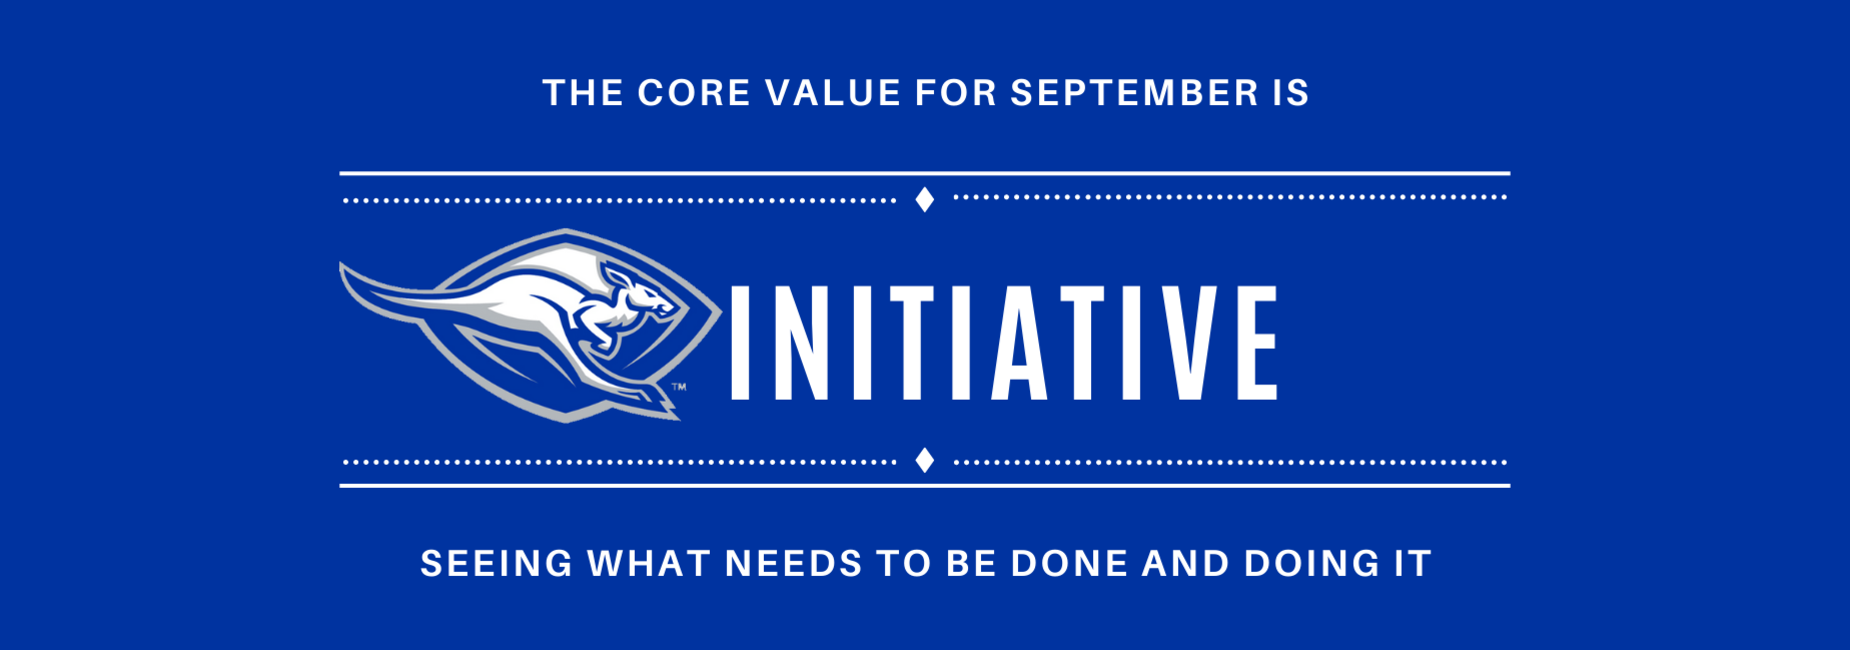 The core value for September is initiative - seeing what needs to be done and doing it